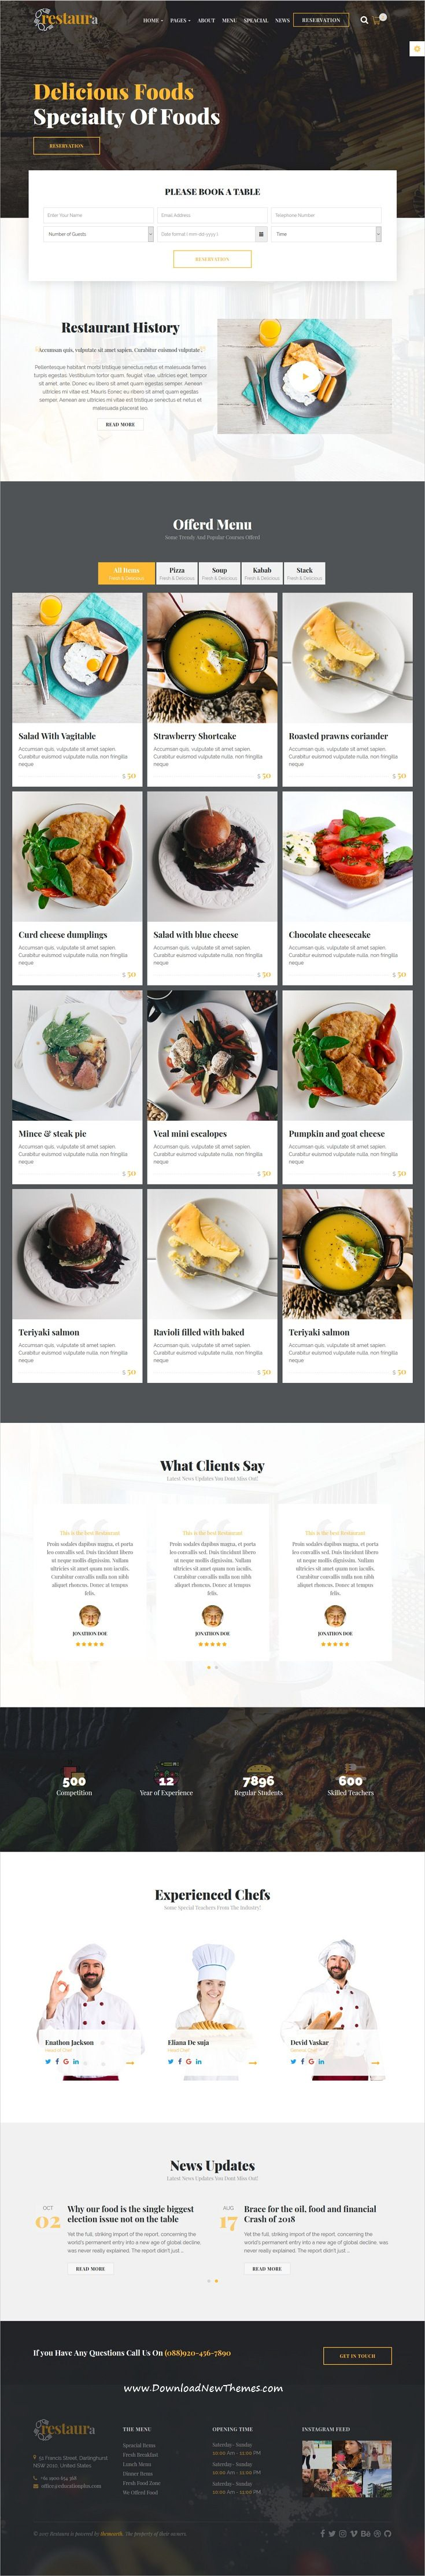 Restaurant HTML Restaura for Restaurant Food